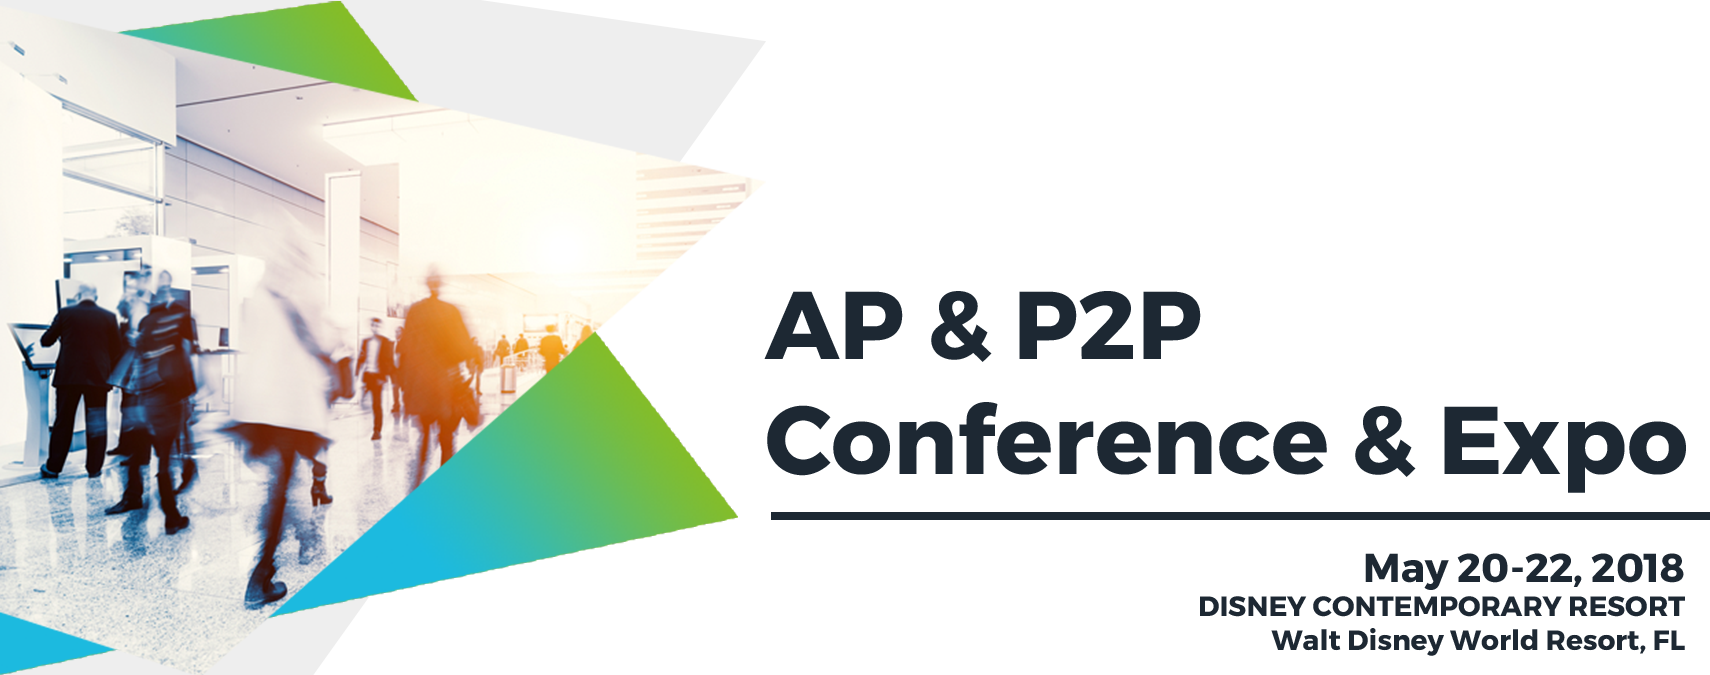 Medius exhibiting at AP P2P Conference 2018